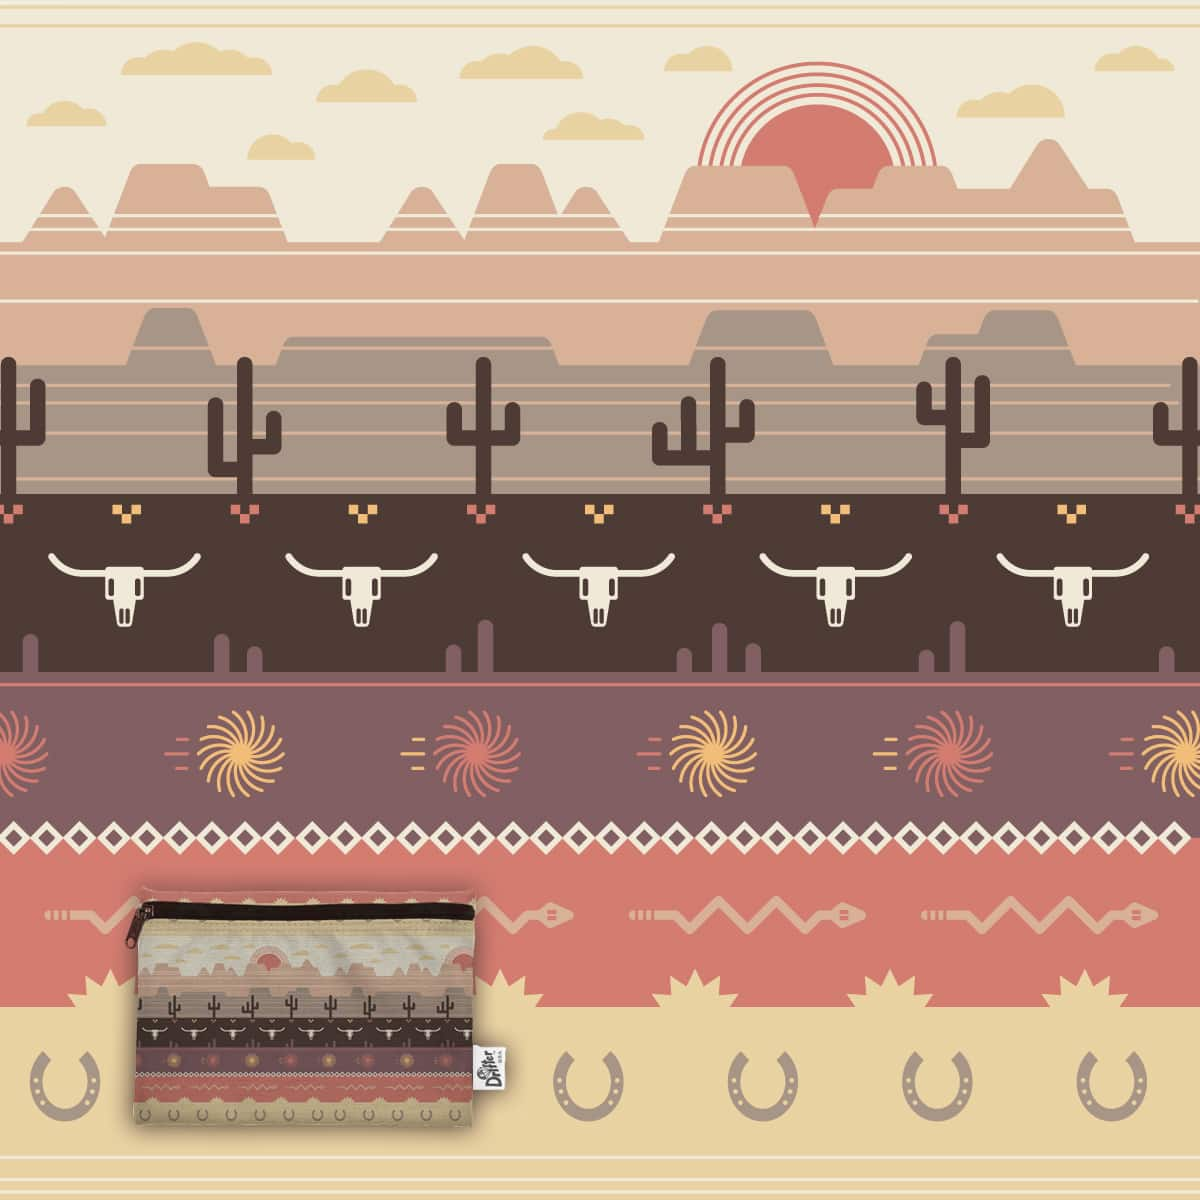 The Endless Journey by ThePaperCrane on Threadless